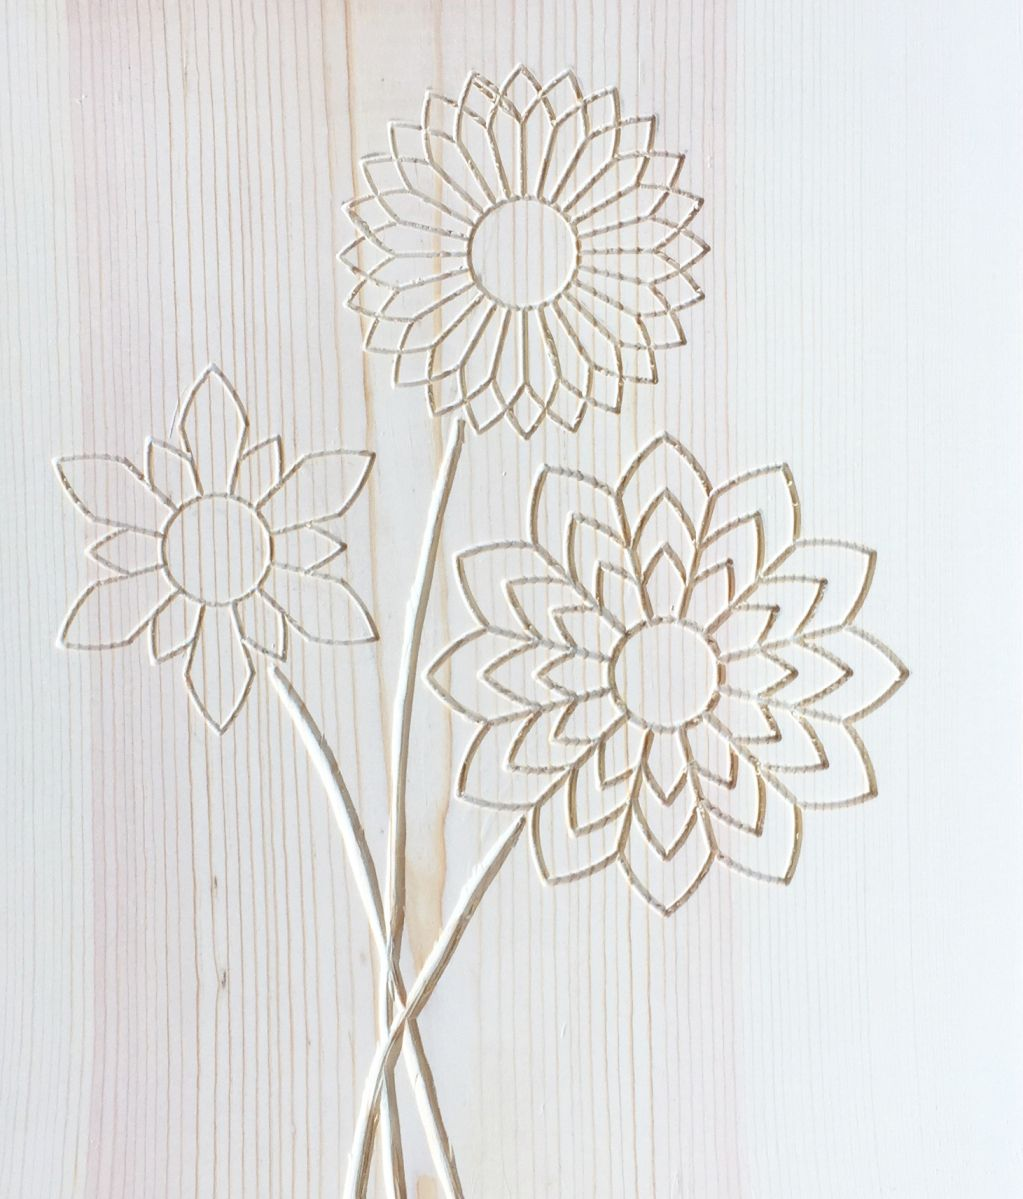 Diy engraved wood designs using a router wood design